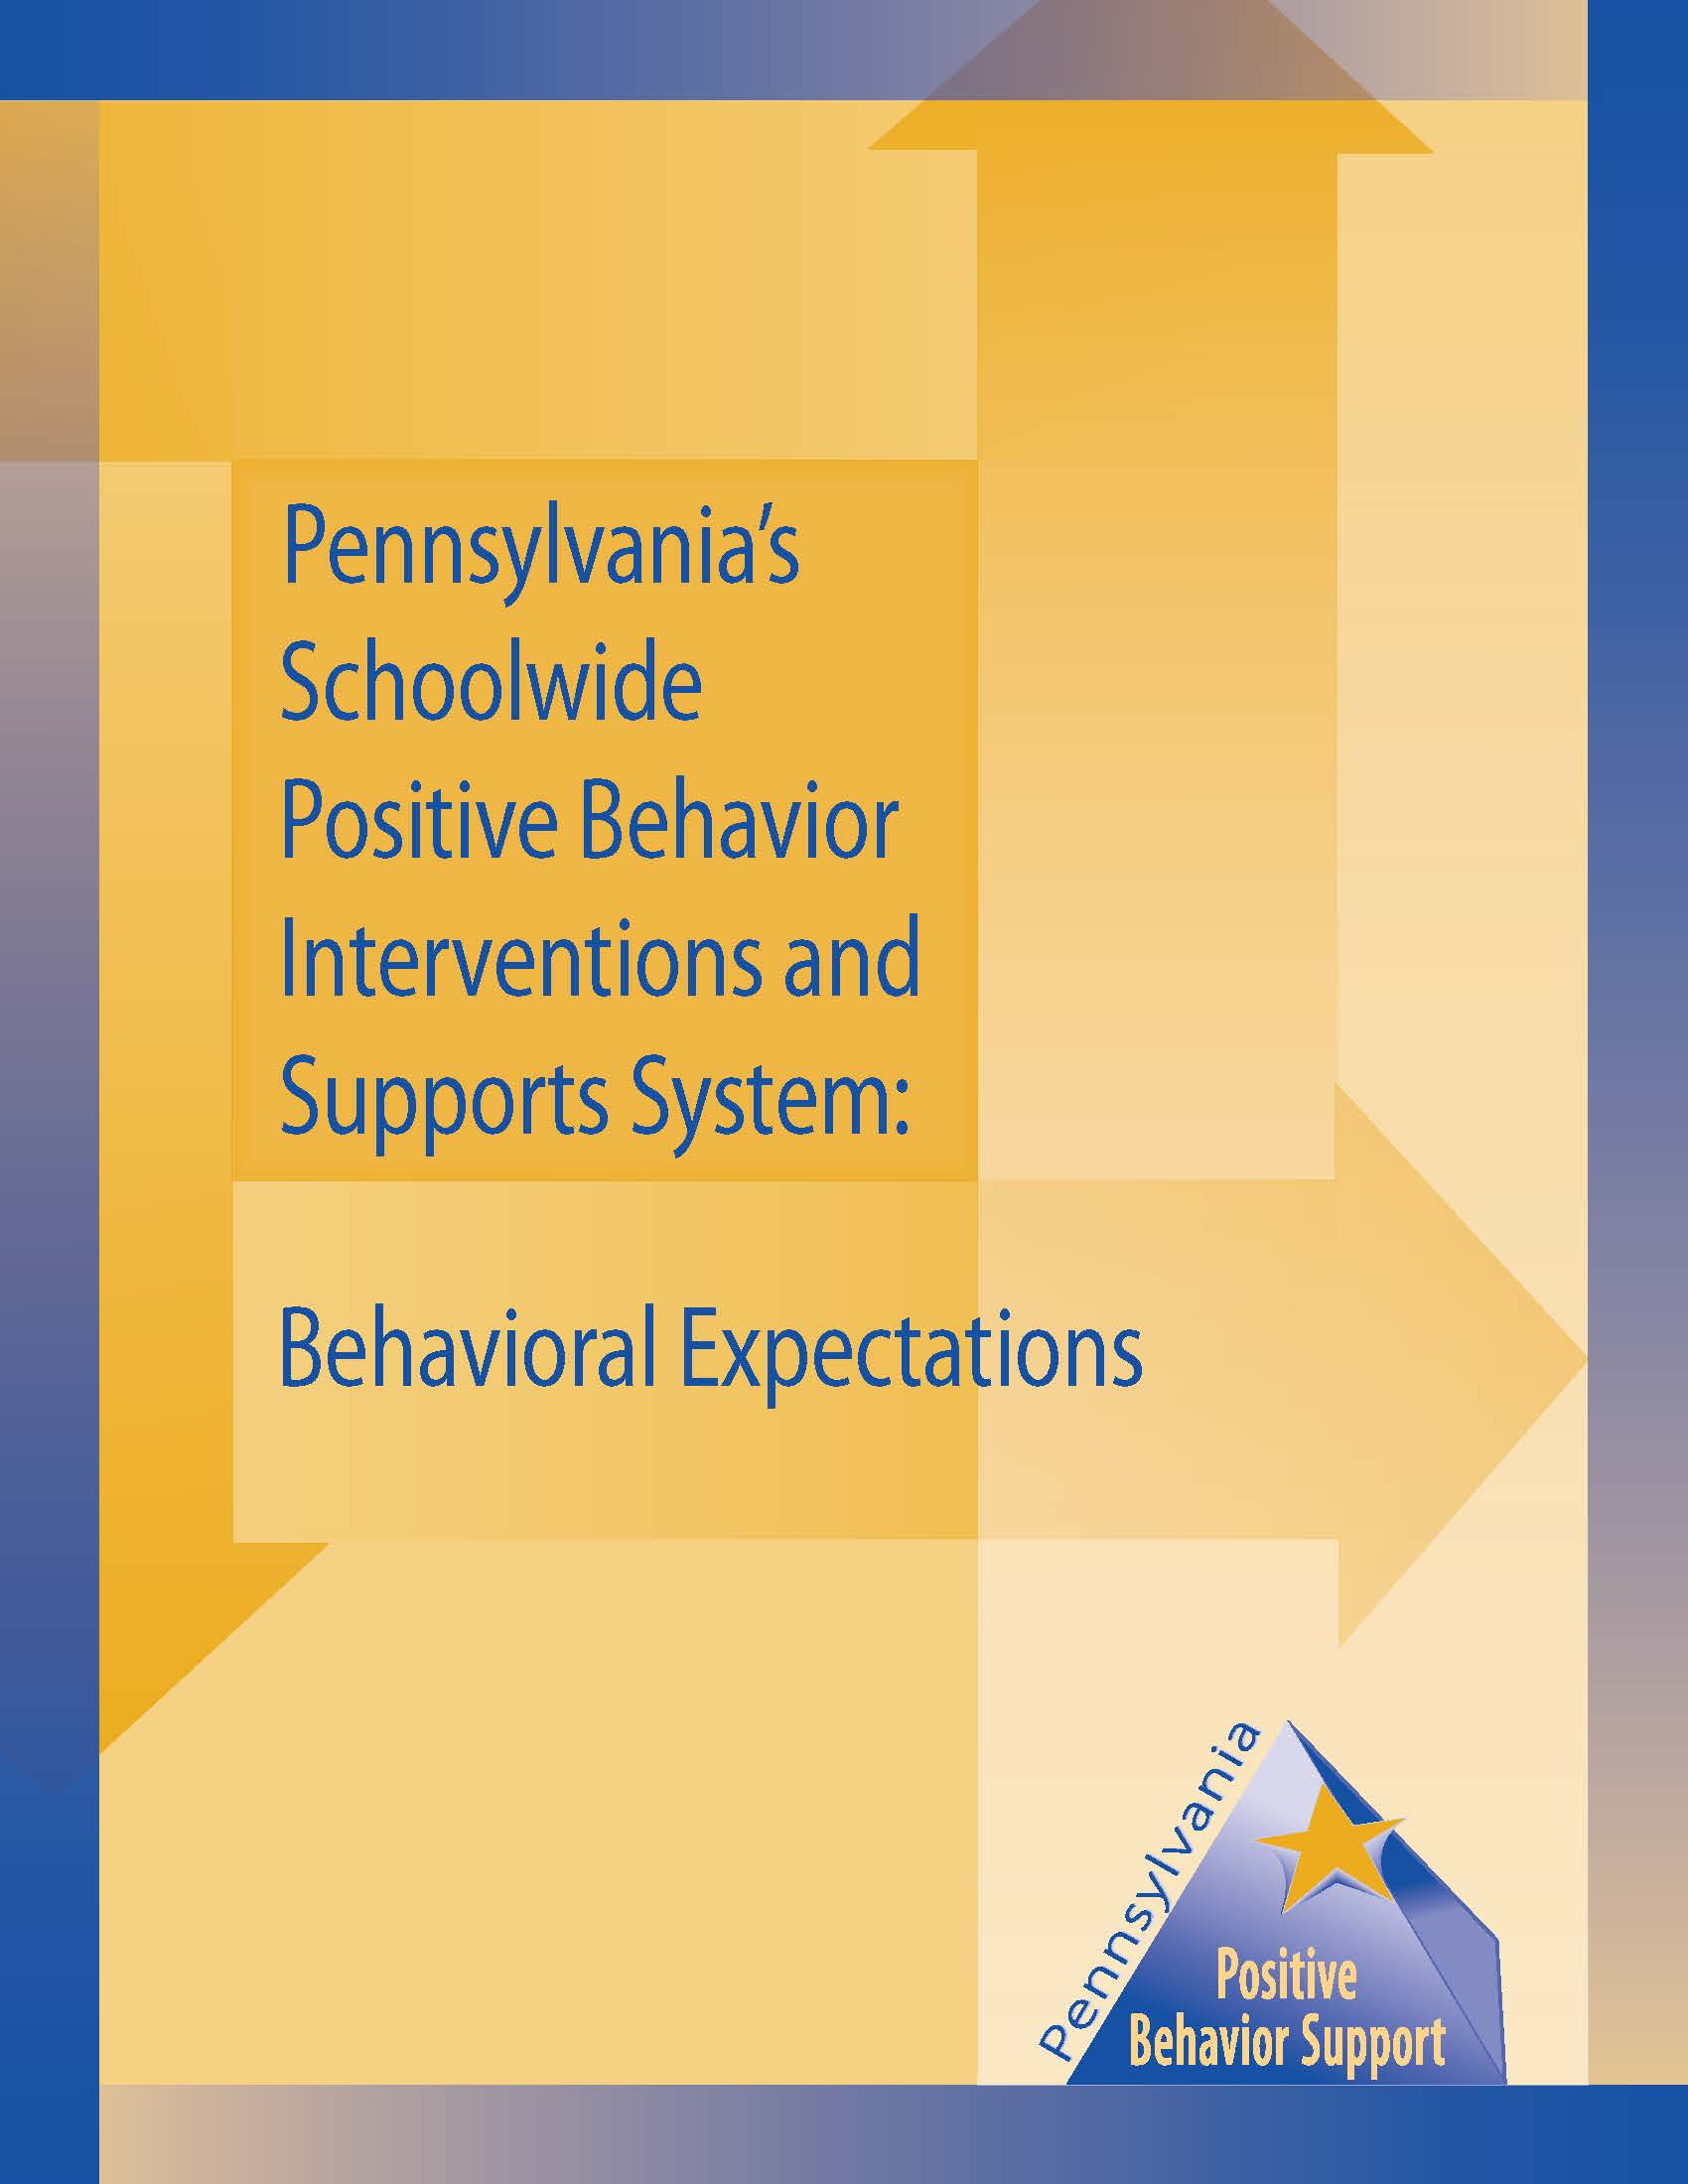 Pennsylvania's Schoolwide Positive Behavior Interventions and Supports System: Behavioral Expectations